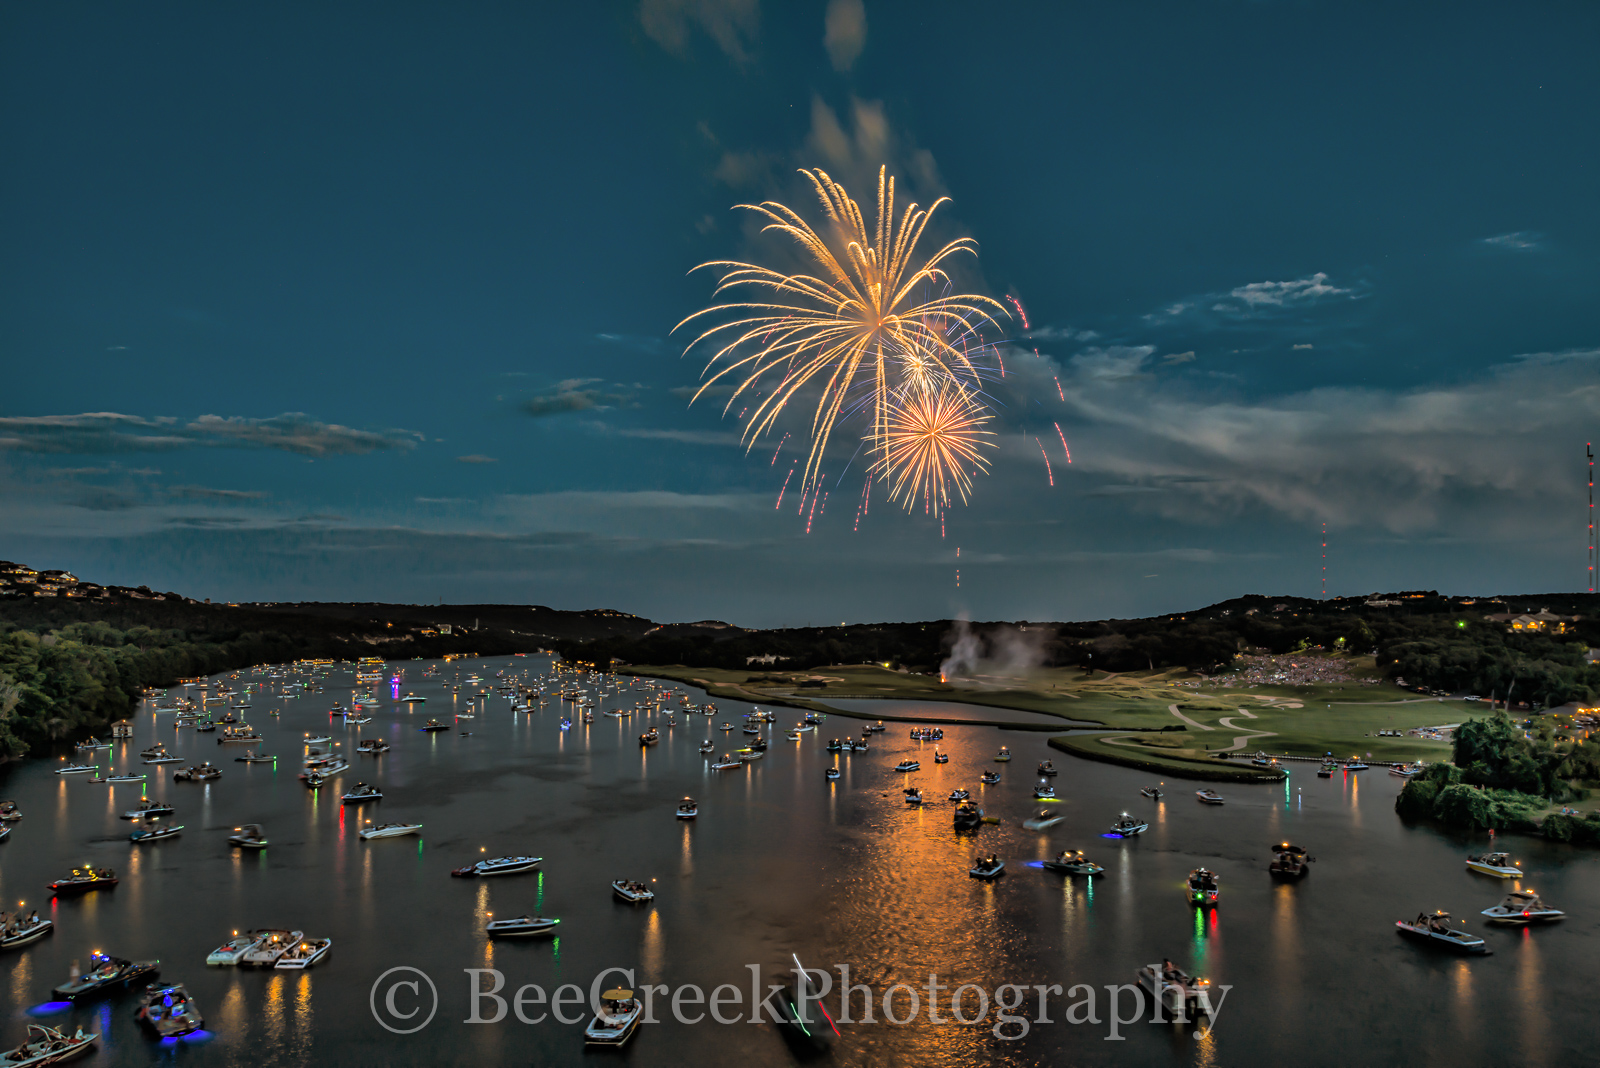 360 bridge, 360 bridge photo, 360 bridge photos, Austin, Austin 360 Bridge, Fireworks in austin, Lake Austin, Pennybacker bridge, River, austin country clubs fireworks, austin fireworks, austin images, photo